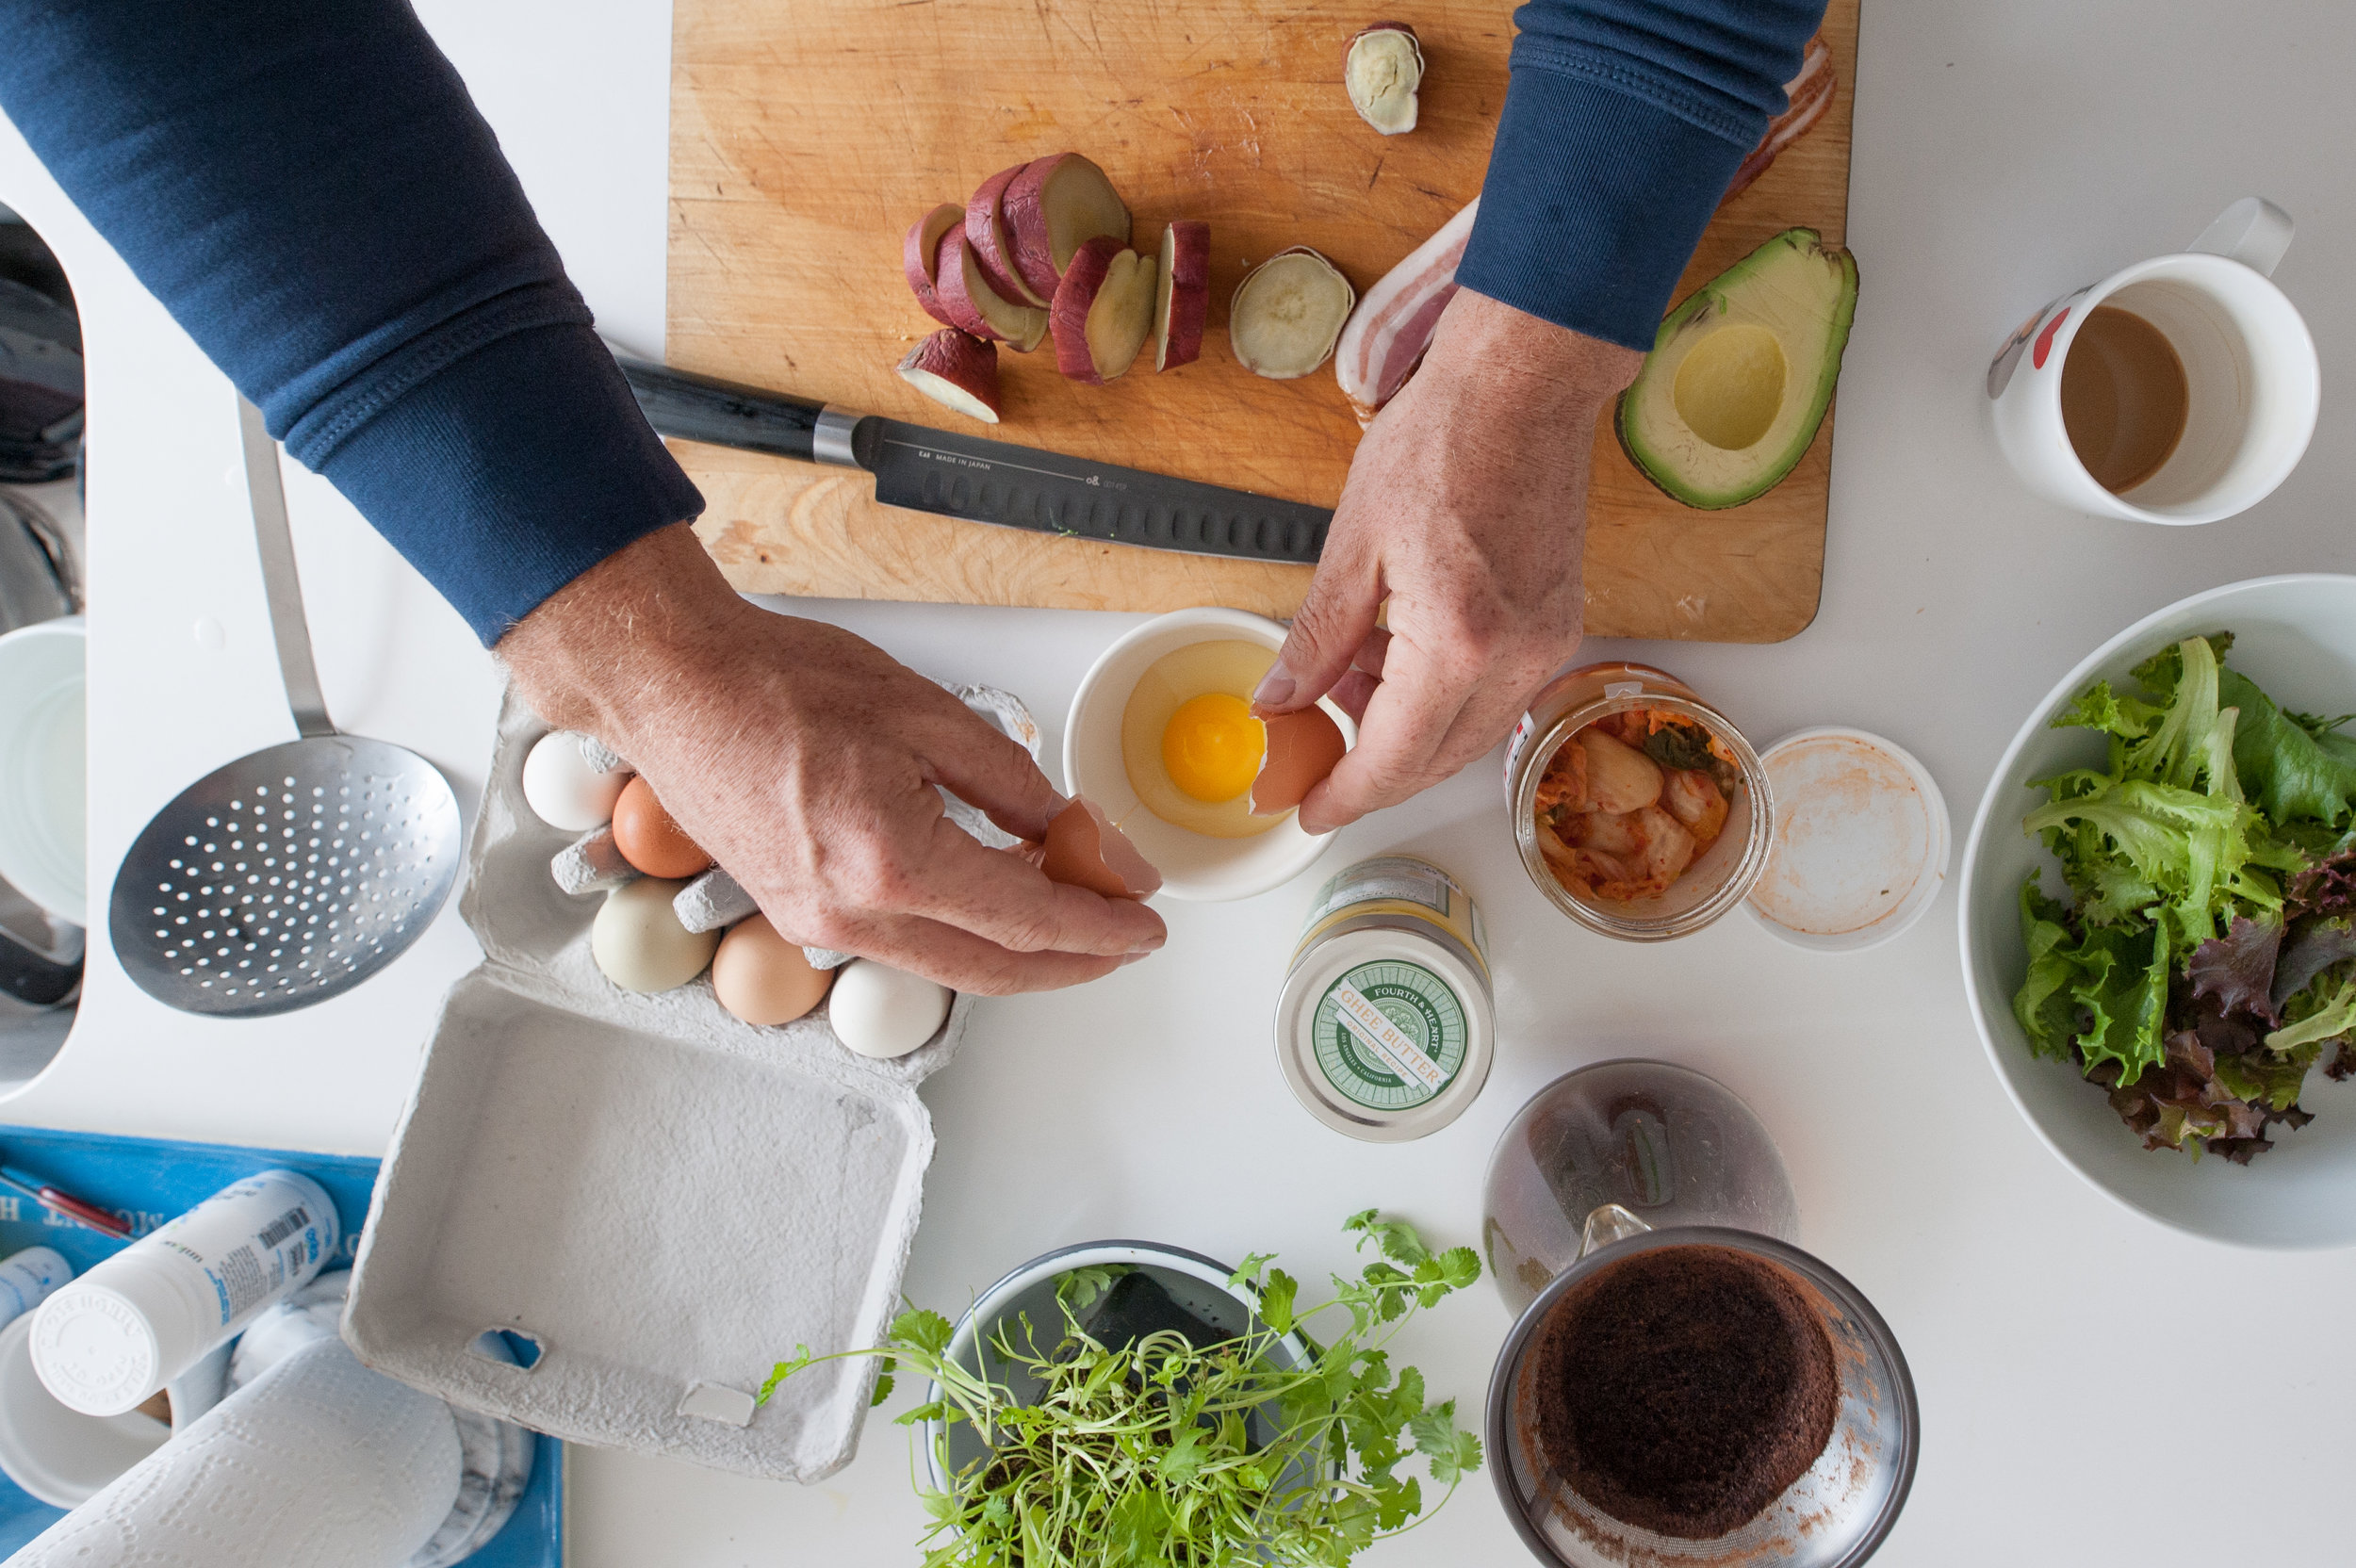 Seamus Mullen's kitchen counter as he prepares a meal with eggs and avocado